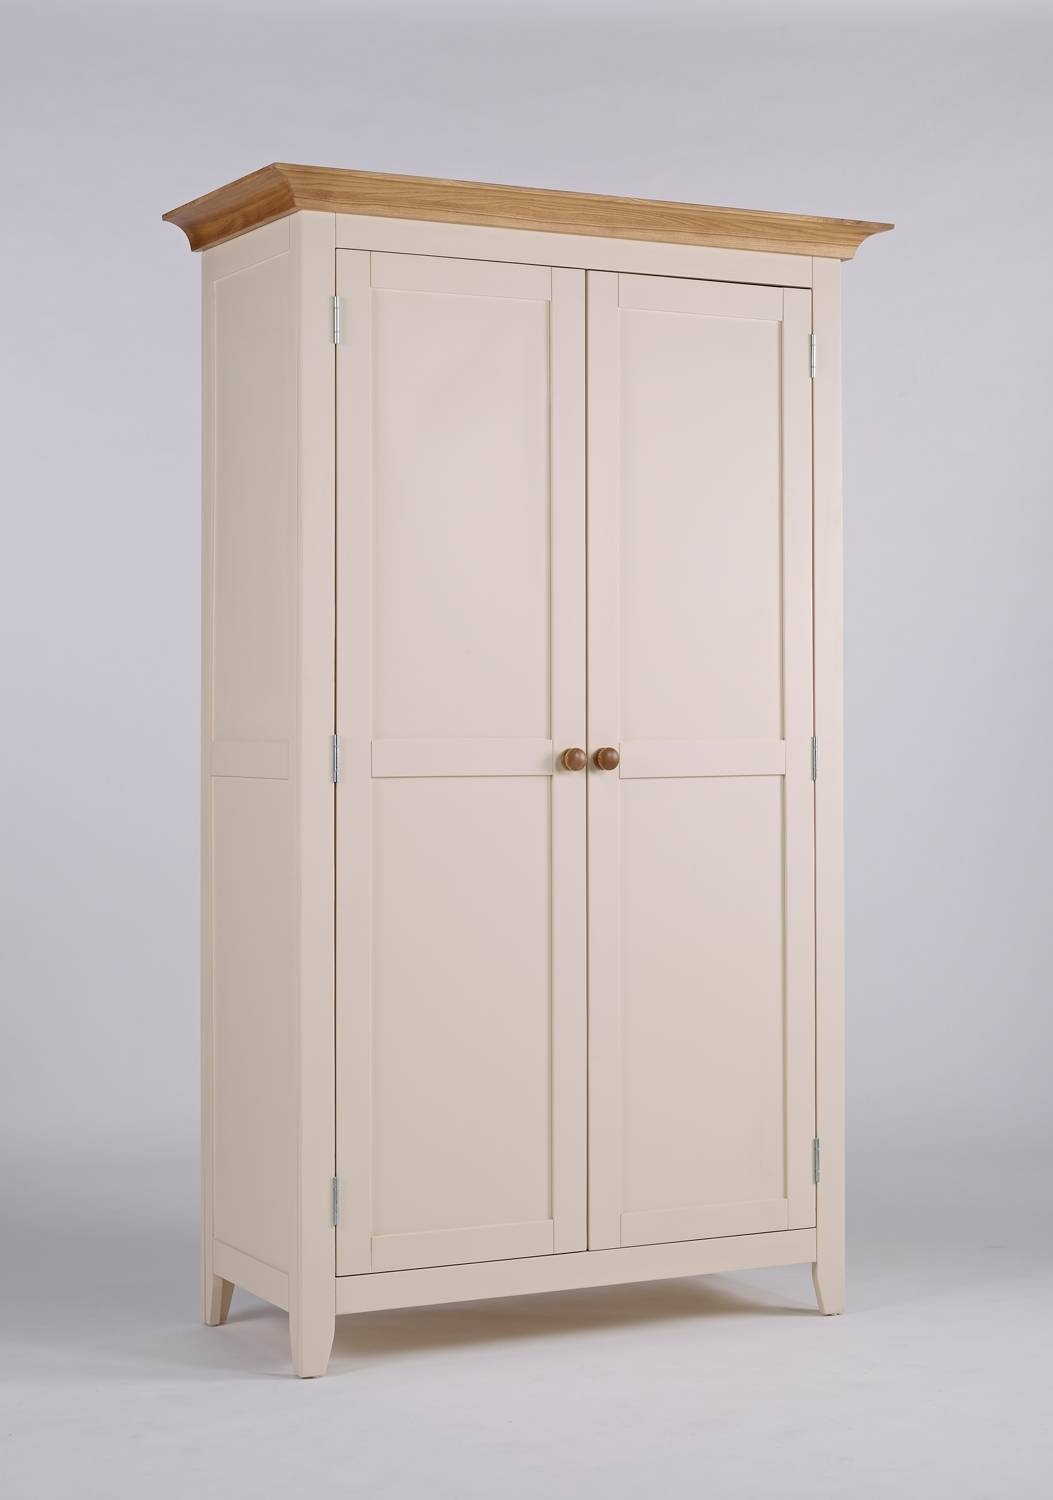 Solid Oak Wardrobes | Painted & Walnut Wardrobes | Free Delivery with regard to Cheap Triple Wardrobes (Image 10 of 15)